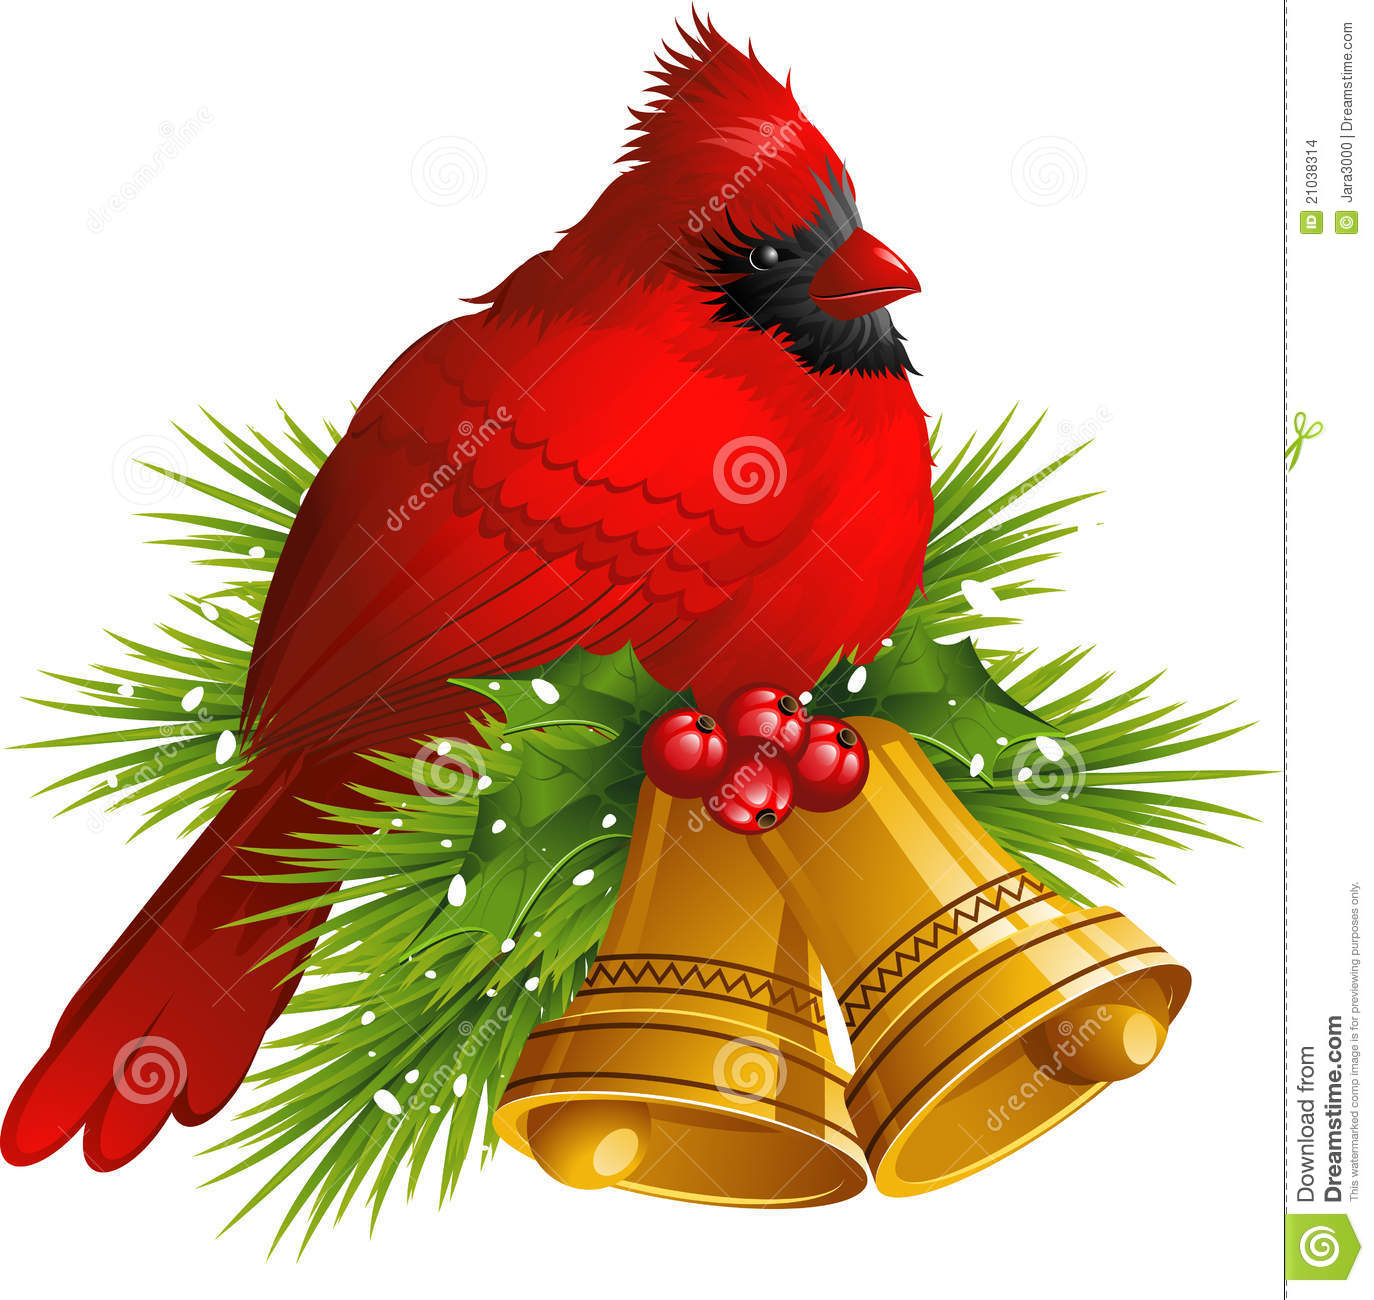 cardinal bird with christmas bells - Red Cardinal Christmas Decorations